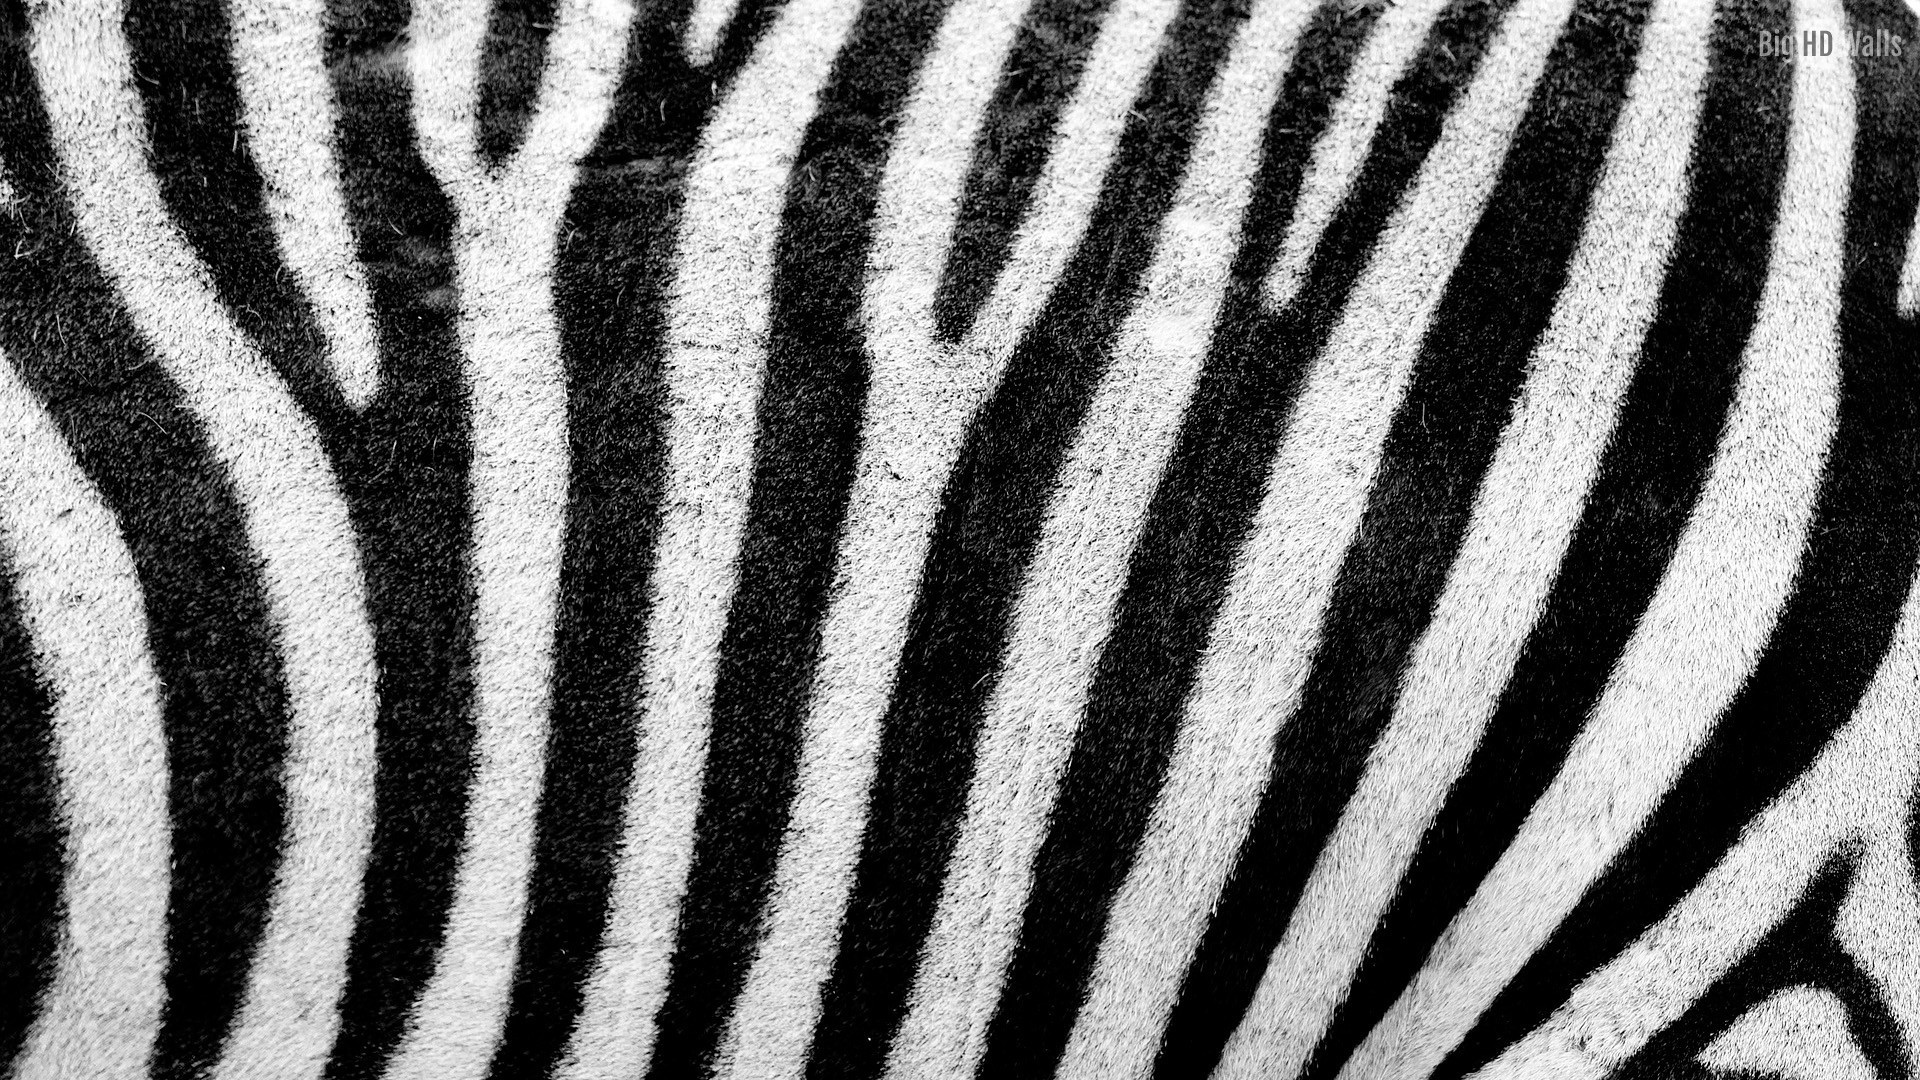 1920x1080  Black And White Striped Computer Wallpaper 10 Texture Backgrounds  To  · Stripe Wooden Texture For .